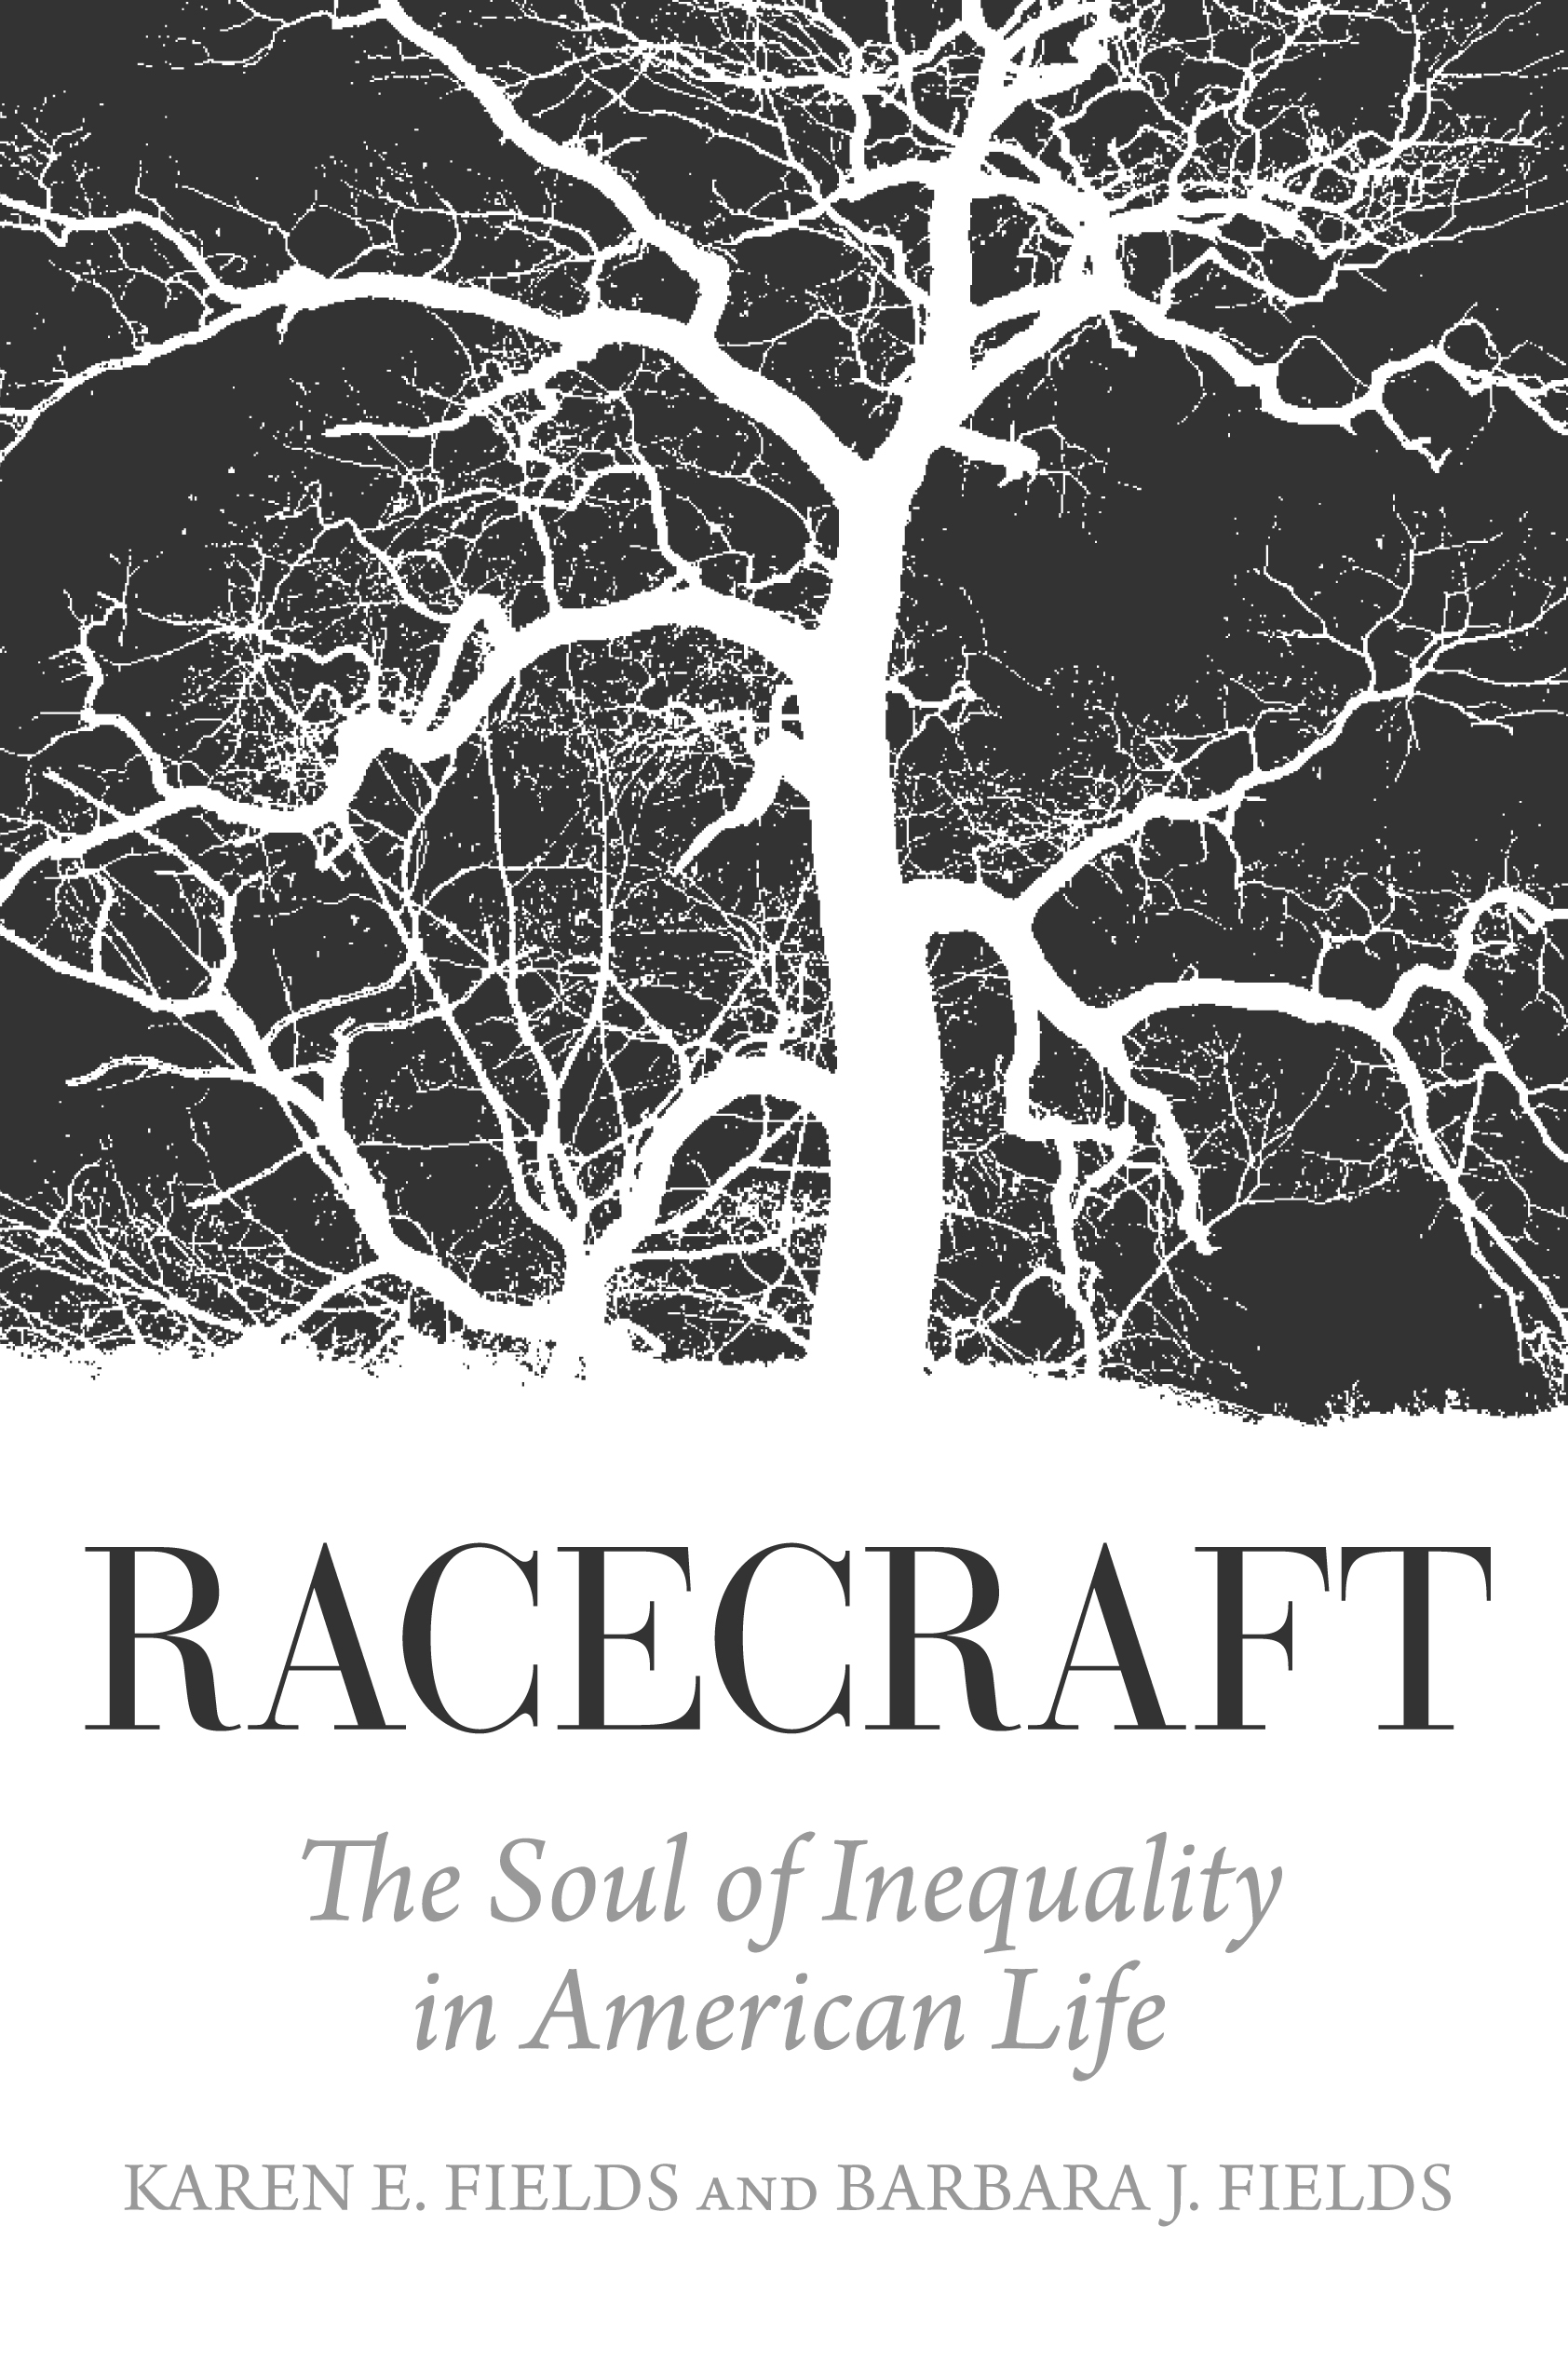 Racecraft by Barbara J. Fields & Karen E. Fields